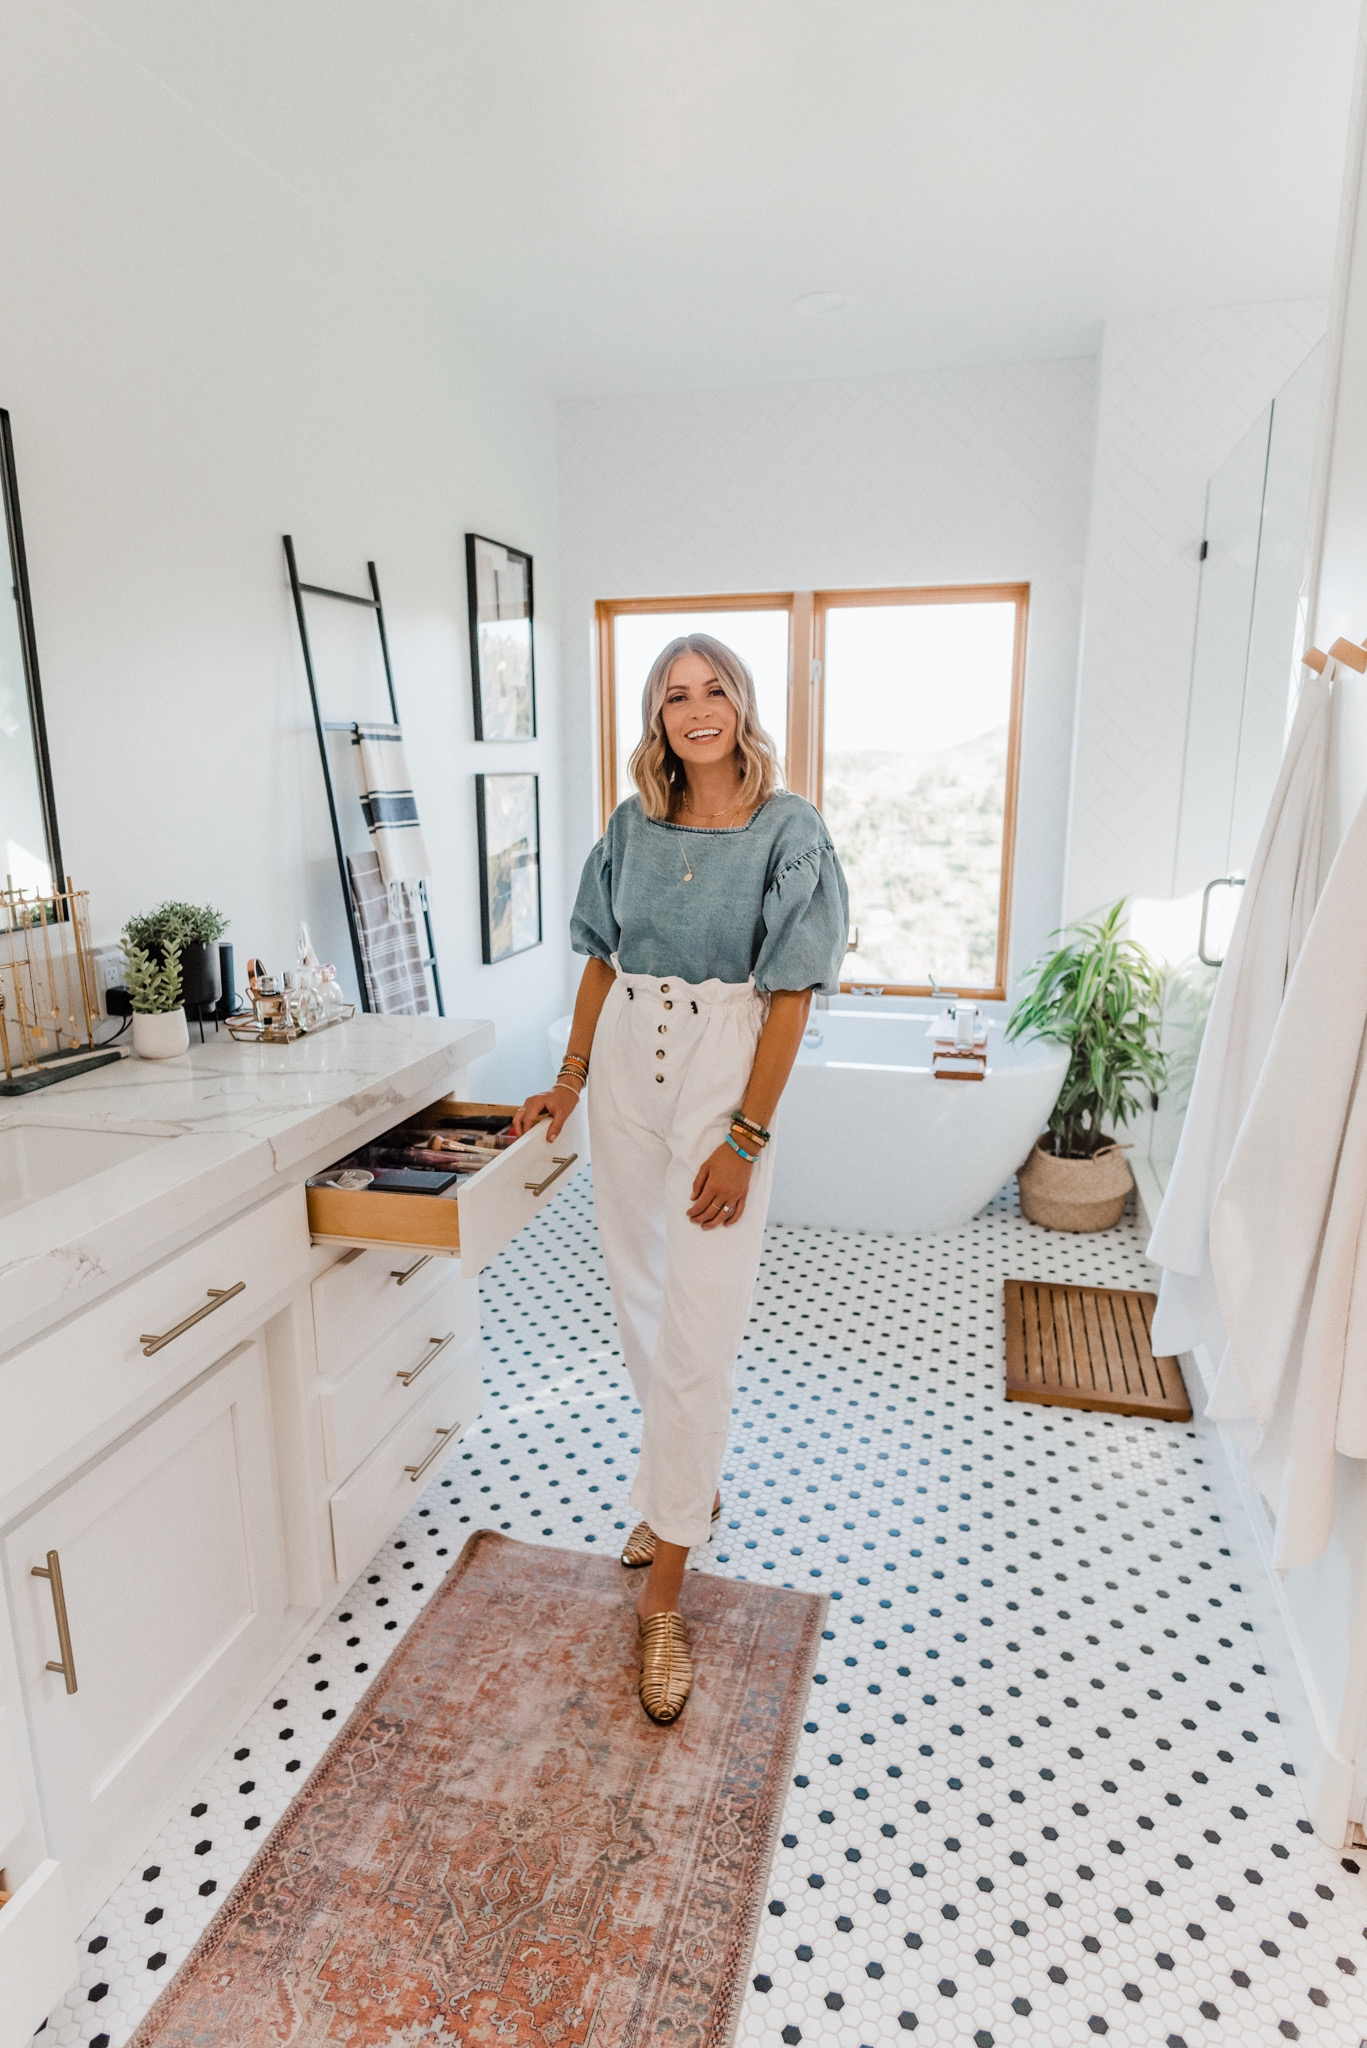 Kitchen Organization Products by popular San Diego life and style blog, Navy Grace: image of a woman wearing a THE ODELLS: EVERLY BUTTON BACK TOP, Urban Outfitters BDG Wisconsin Casual Ecru Pant, and Cecelia GLORIA mule and standing next to her open organized makeup drawer in her bathroom vanity.